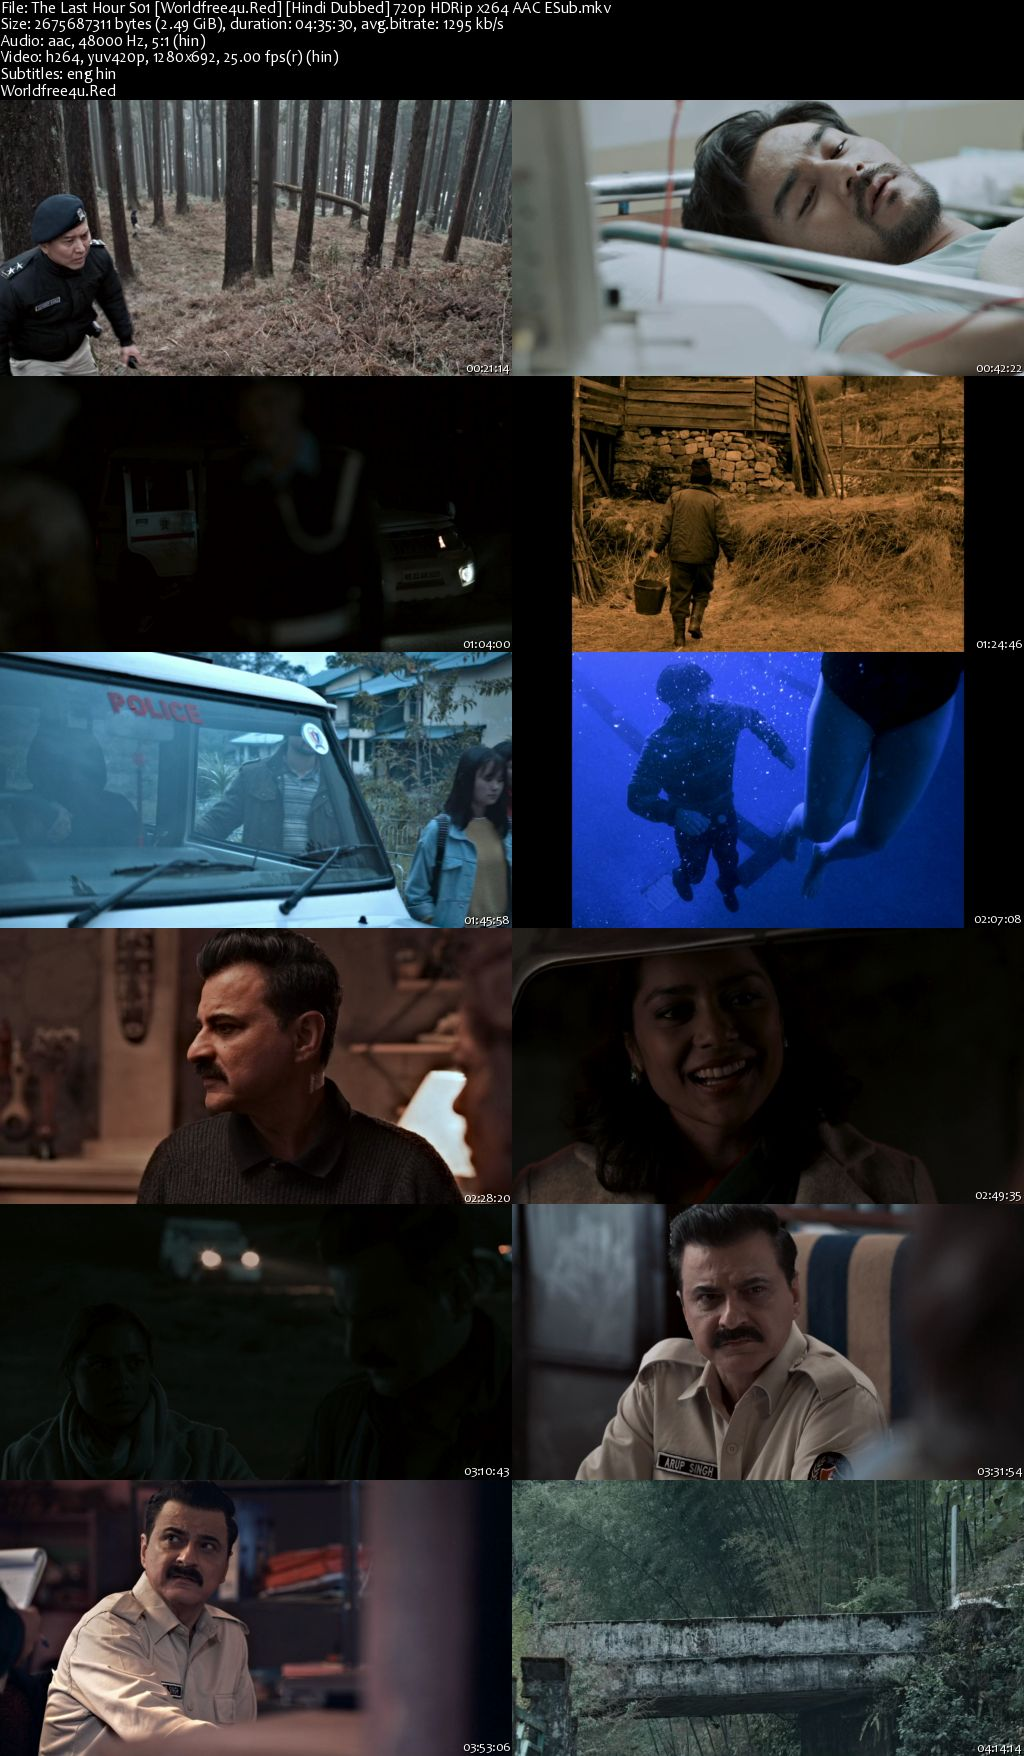 The Last Hour 2021 (Season 1) All Episodes HDRip 720p